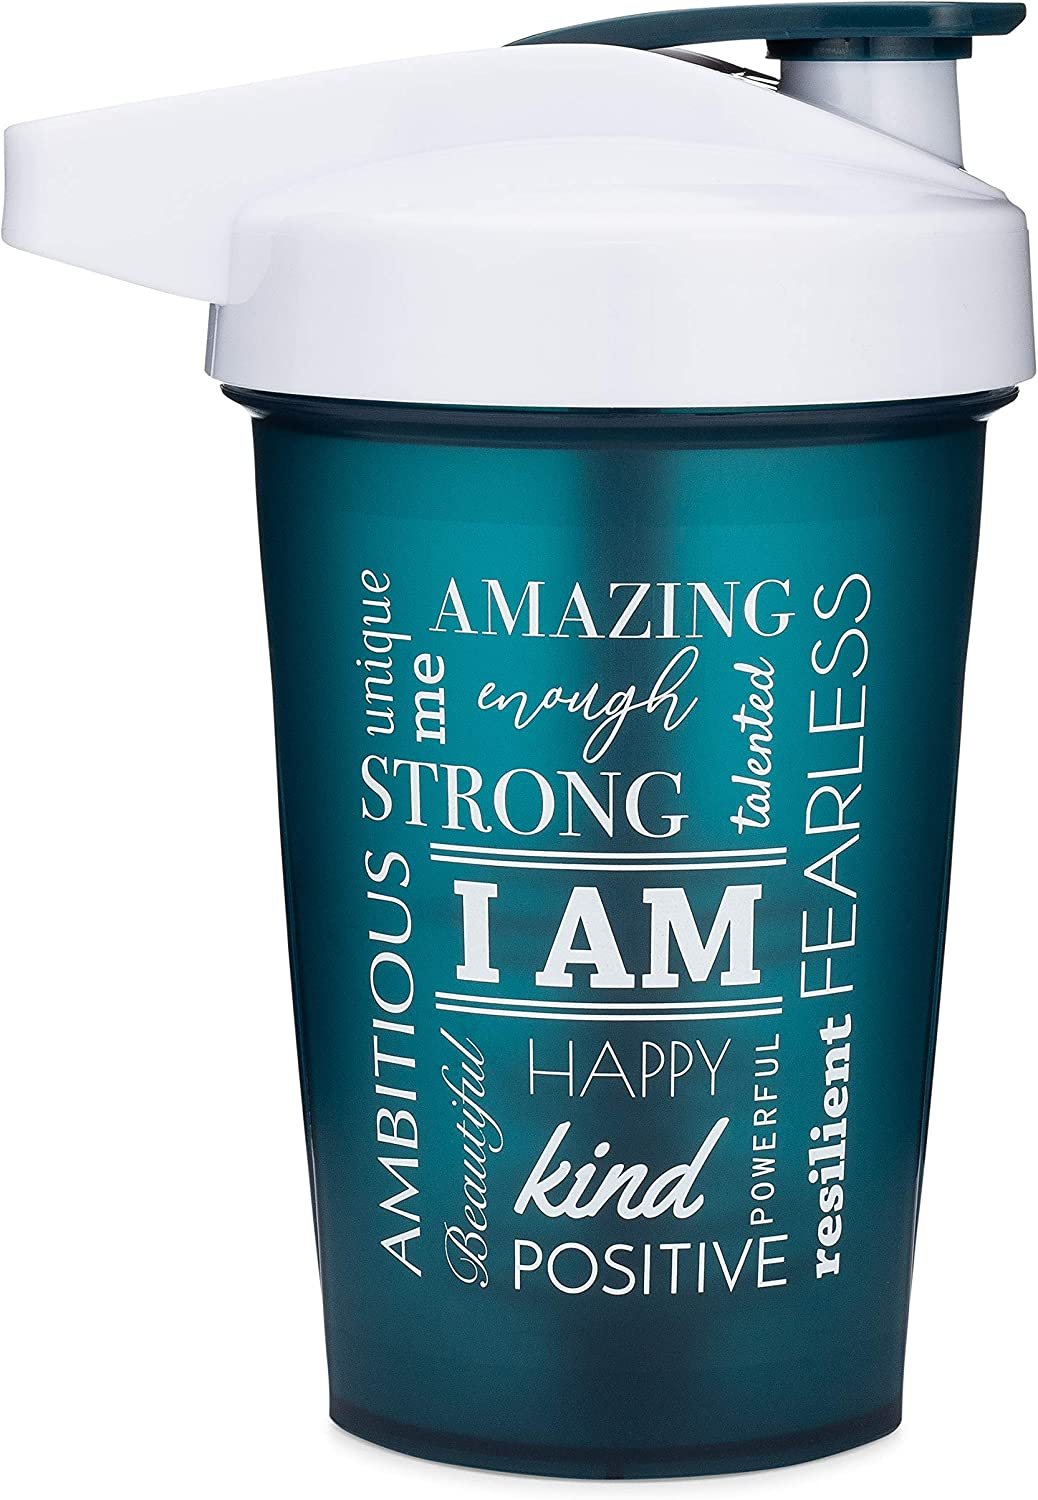 Motivational Quotes on Performa Activ Shaker Bottle, 20 Ounce Classic Protein Shaker Bottle with Loop, Leak Proof, Perfect Gym Fitness Gift (I Am - Teal)